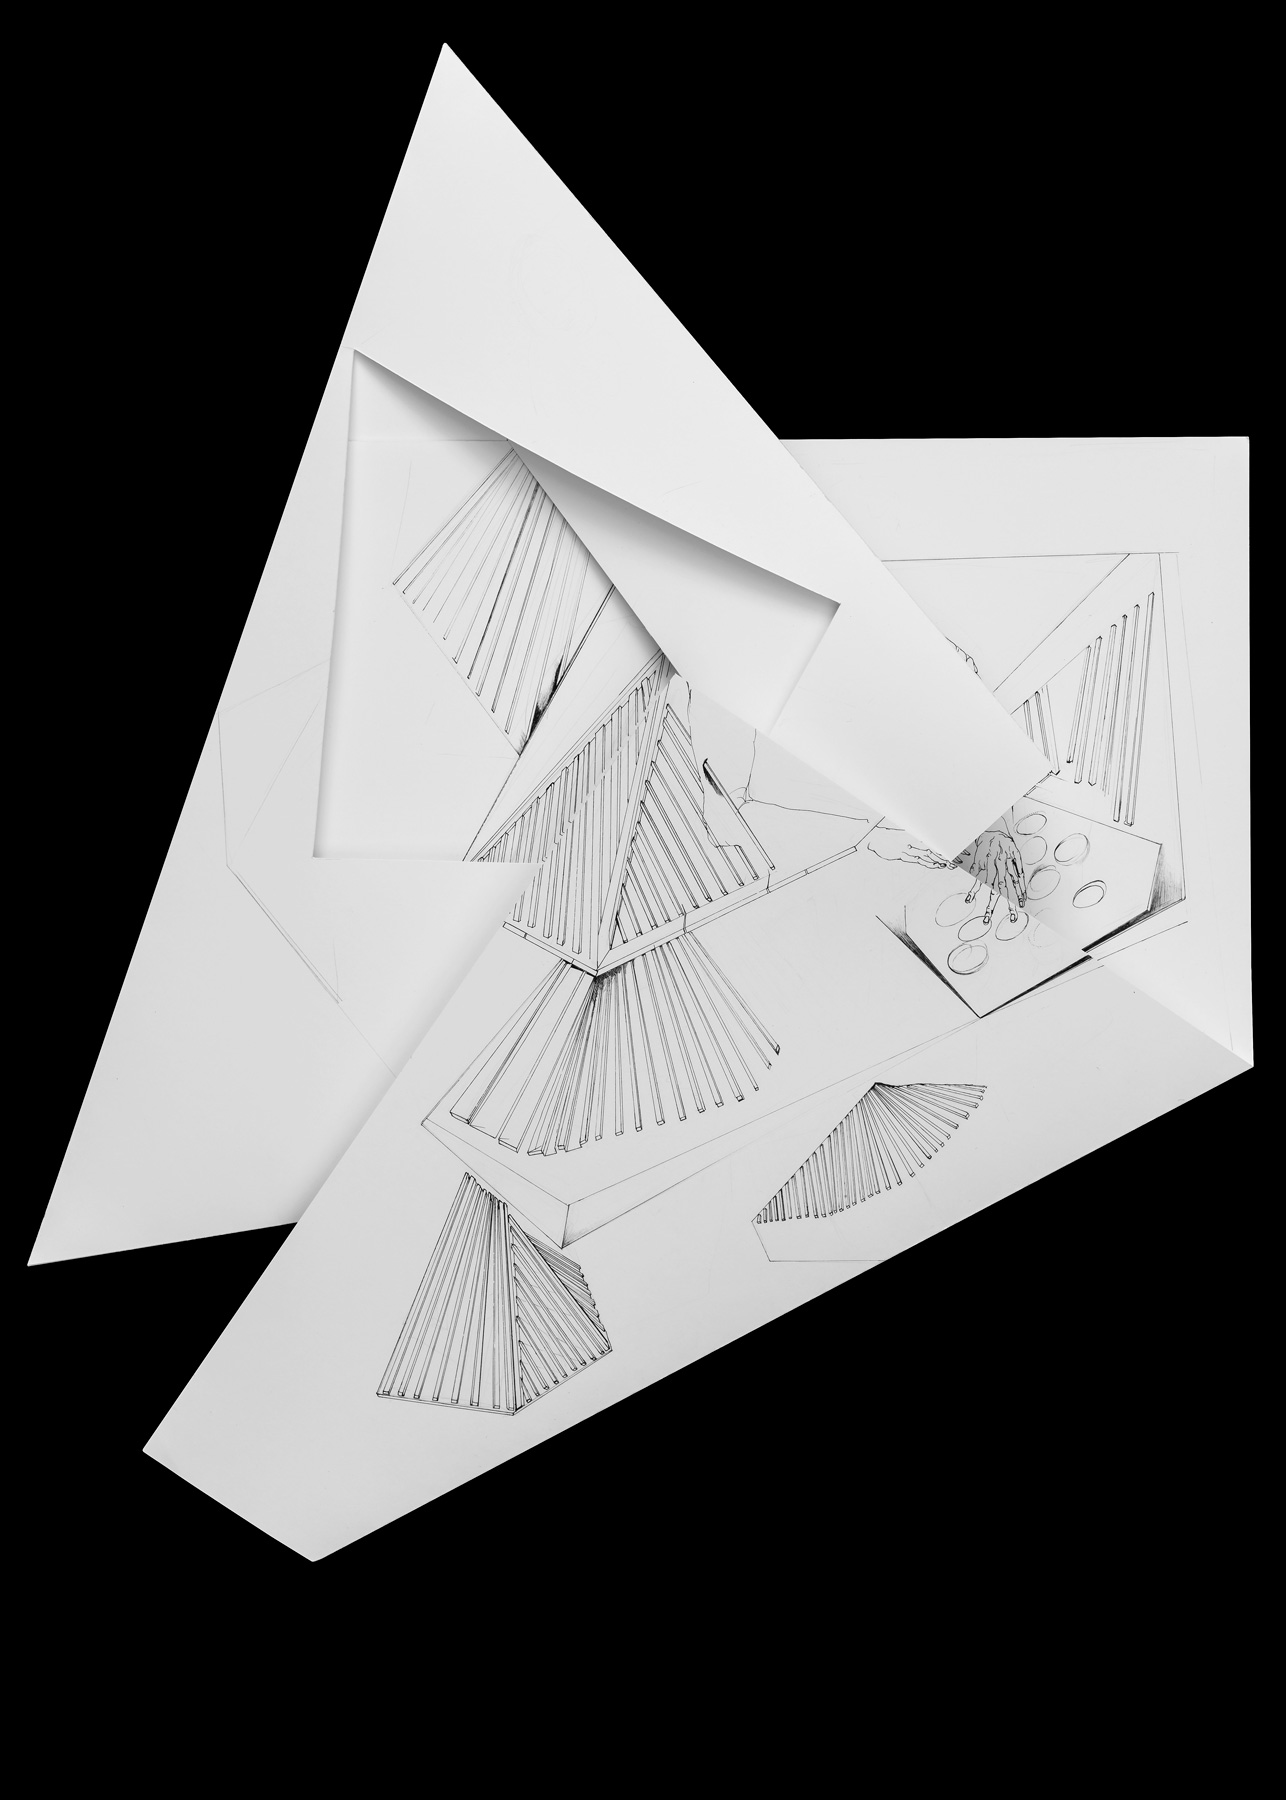 Nina Annabelle Märkl | Fragmented fiction 21 | Ink on folded paper, cut-outs | 50 x 40 cm | 2016